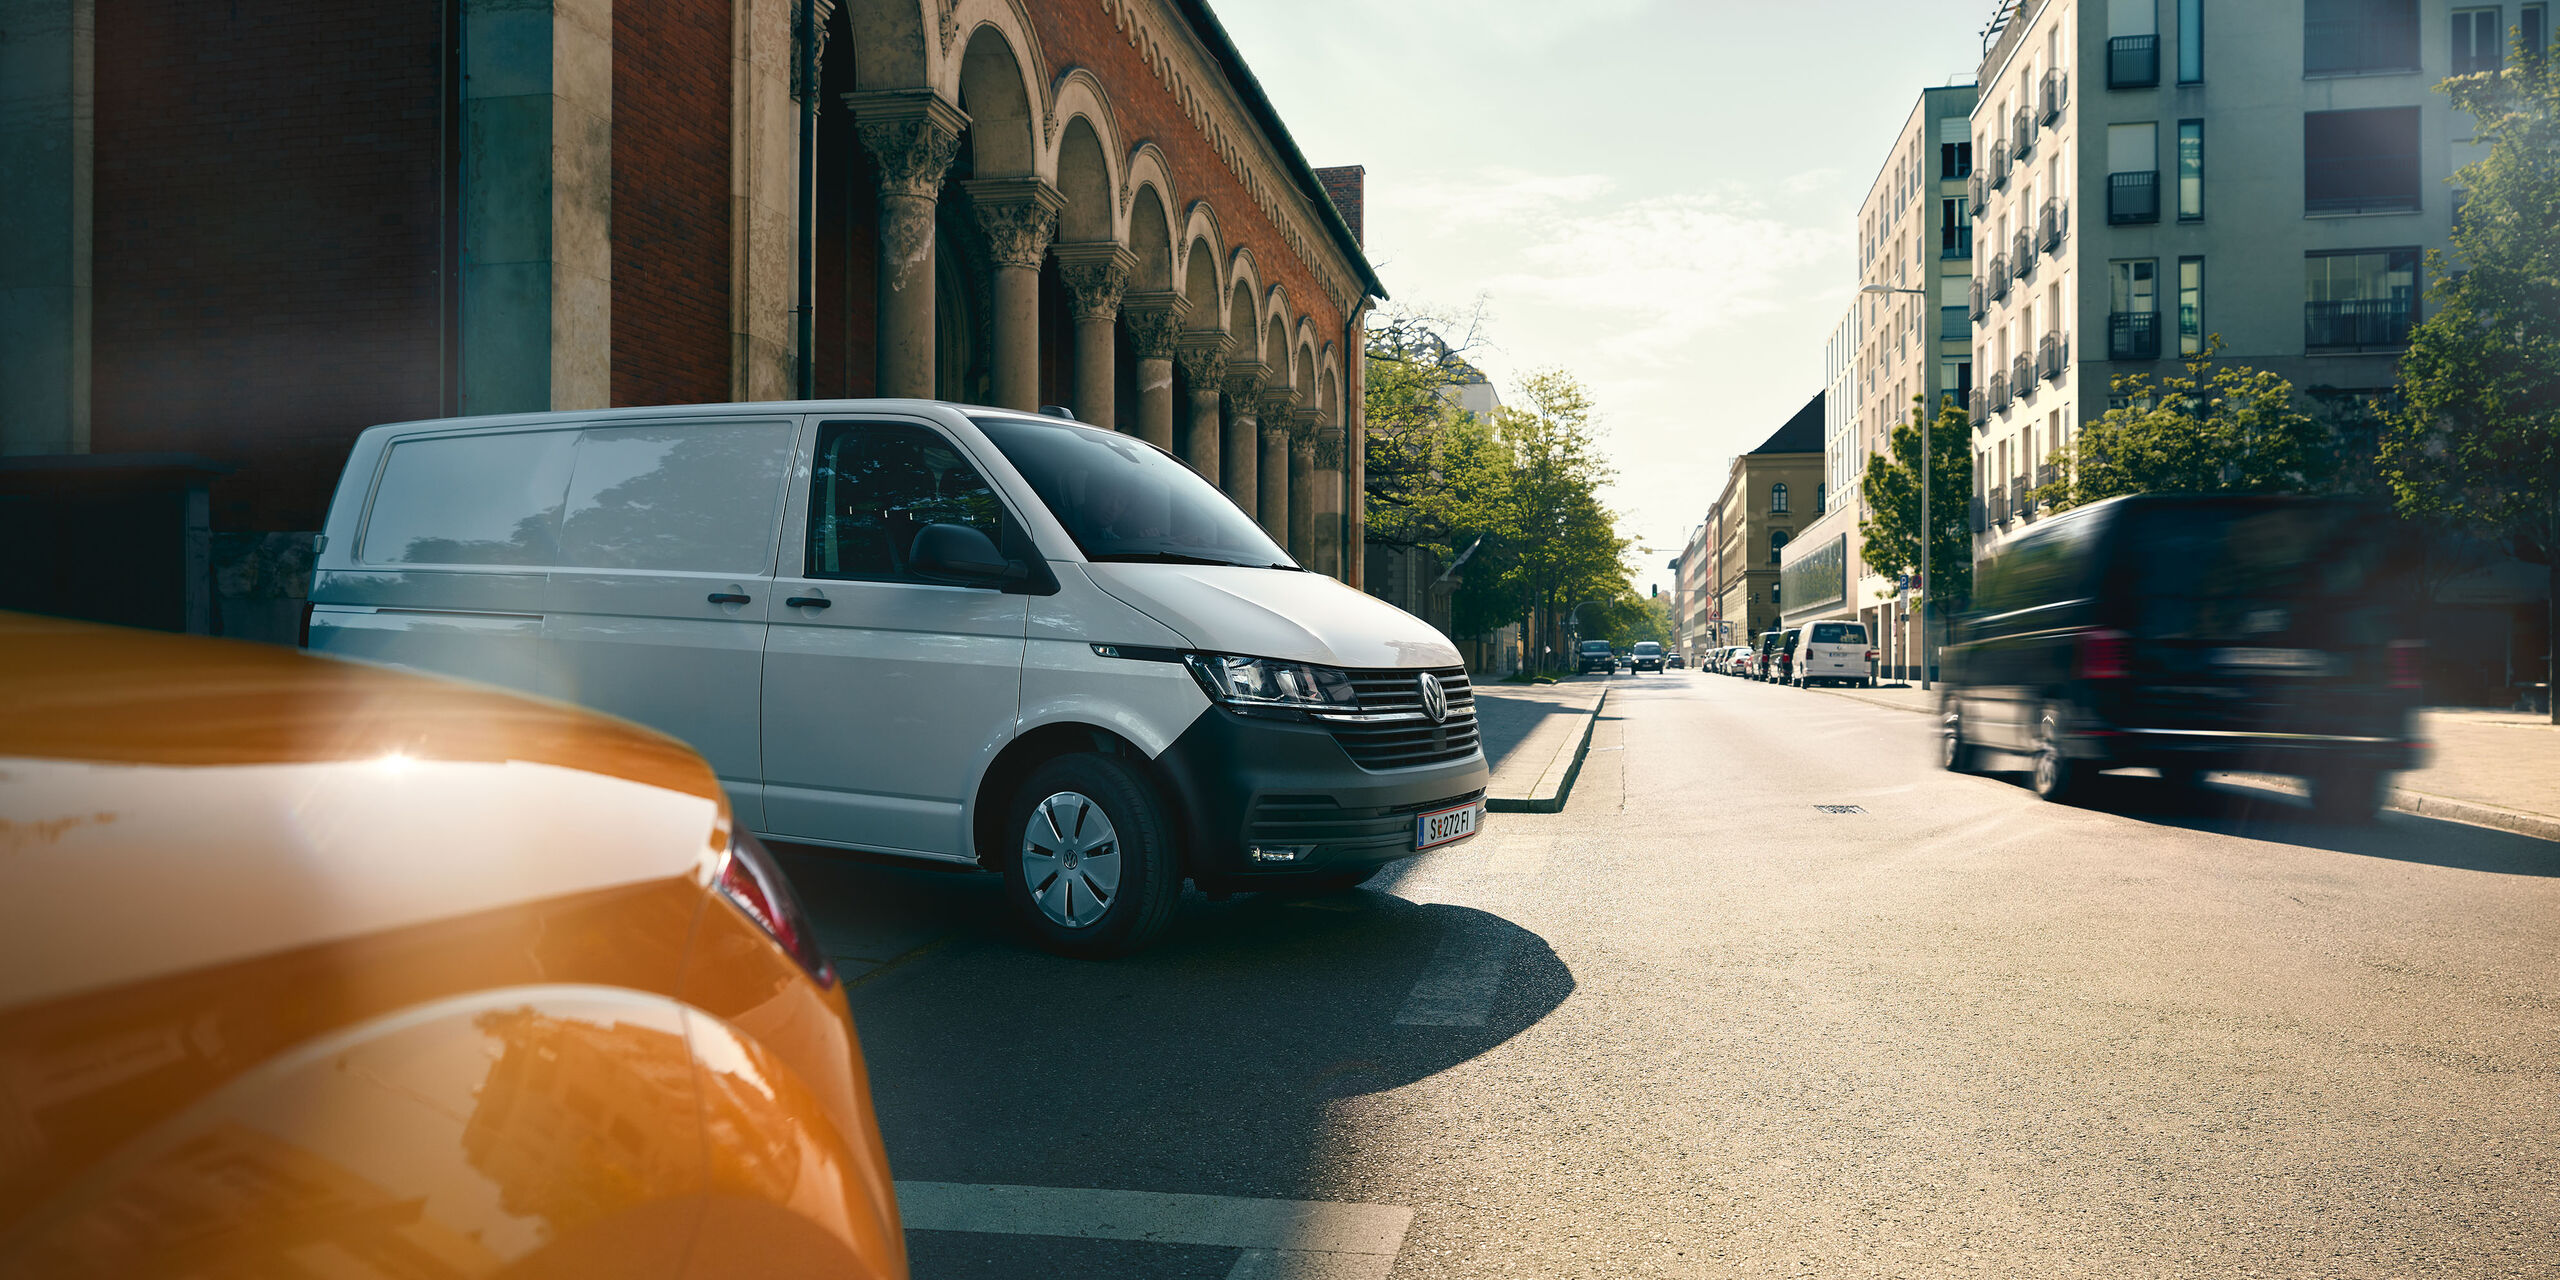 VW Caddy Товарен вариант T6 транспортер бял